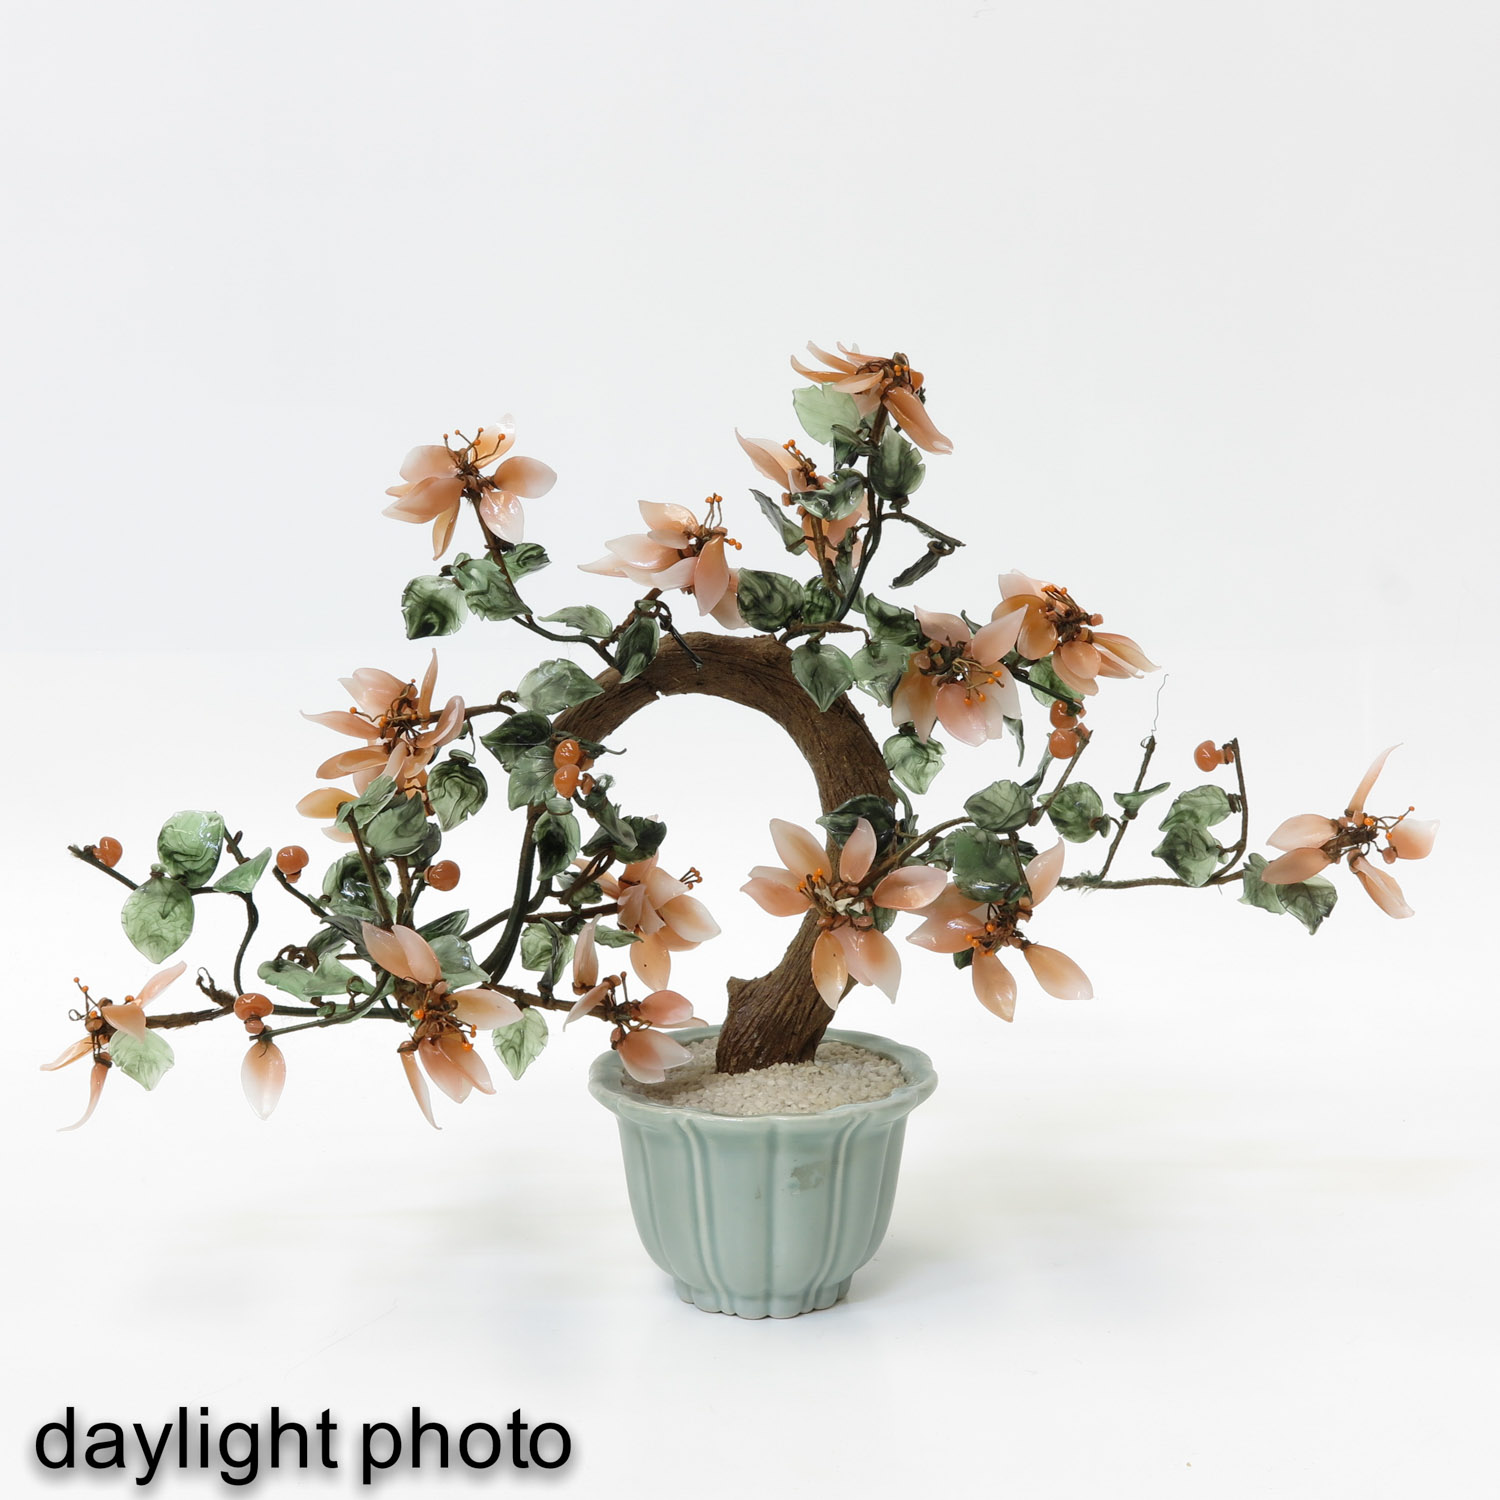 A Collection of Floral Arrangements - Image 9 of 10